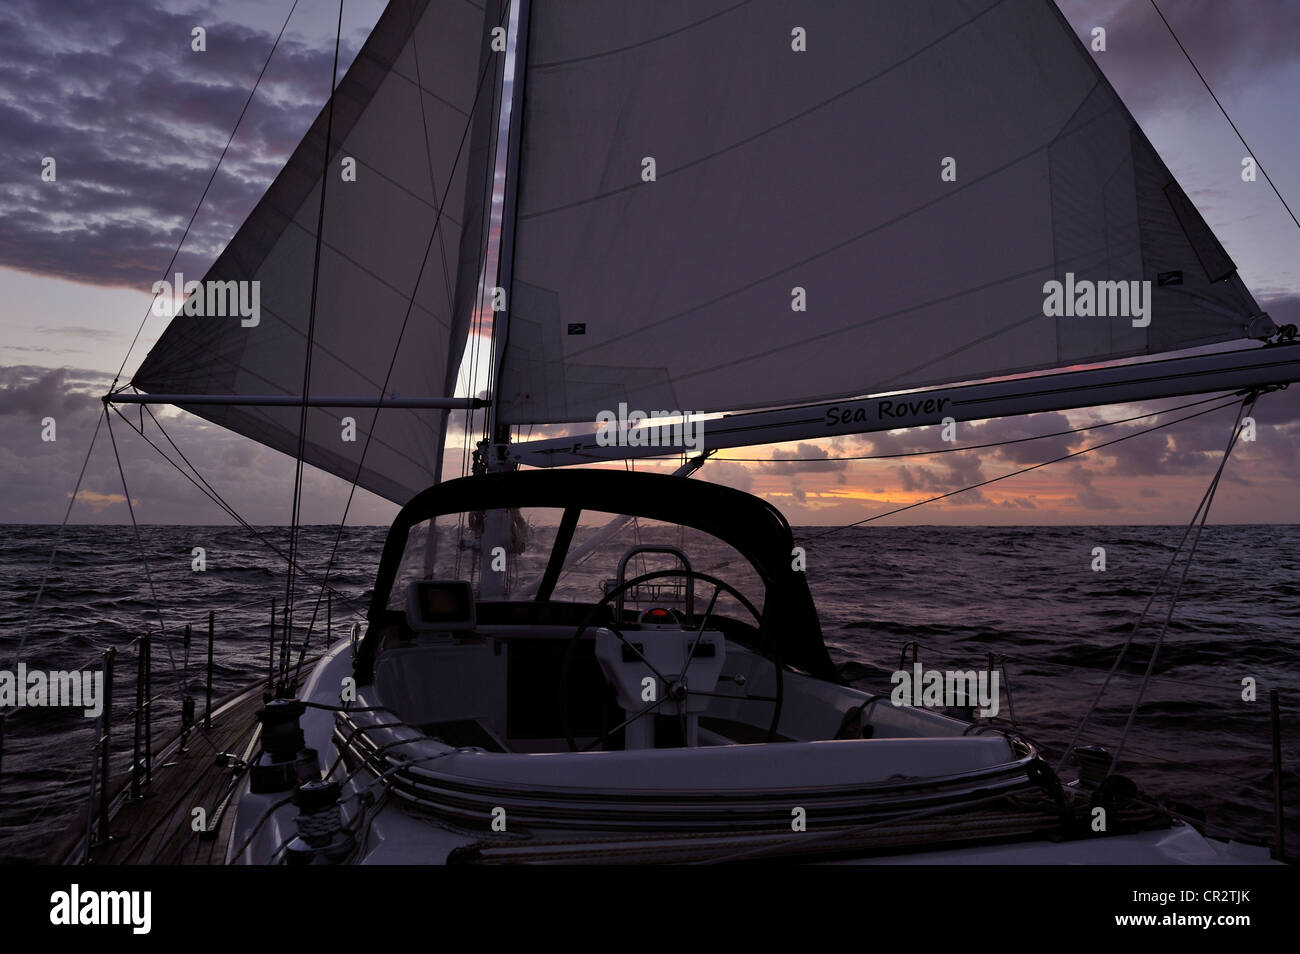 A cruising yacht  sailing with poled out genoa and mainsail in early morning light, offshore in the South Pacific - Stock Image